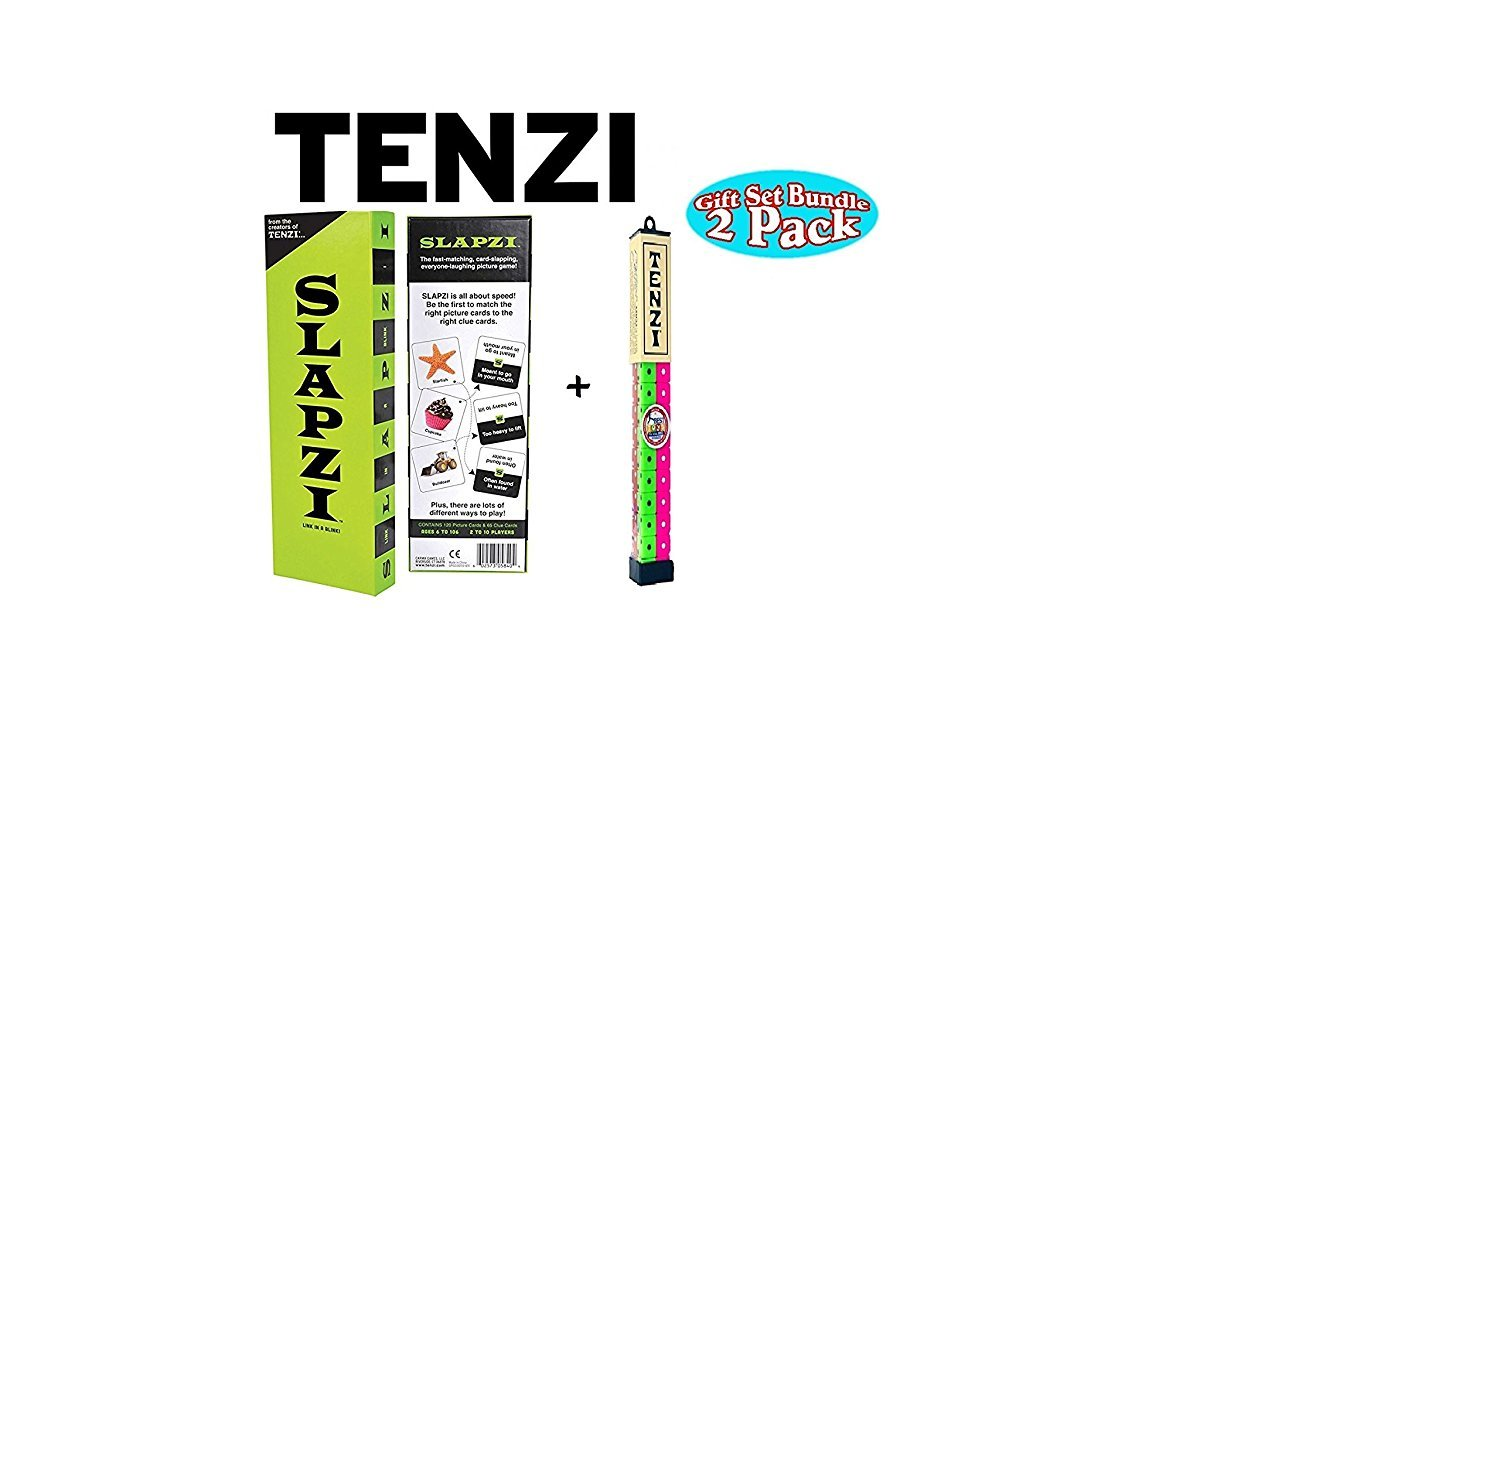 Tenzi Dice Party Game and Slapzi Picture Game - A Fun, Fast Frenzy for All Ages - (Colors May Vary)